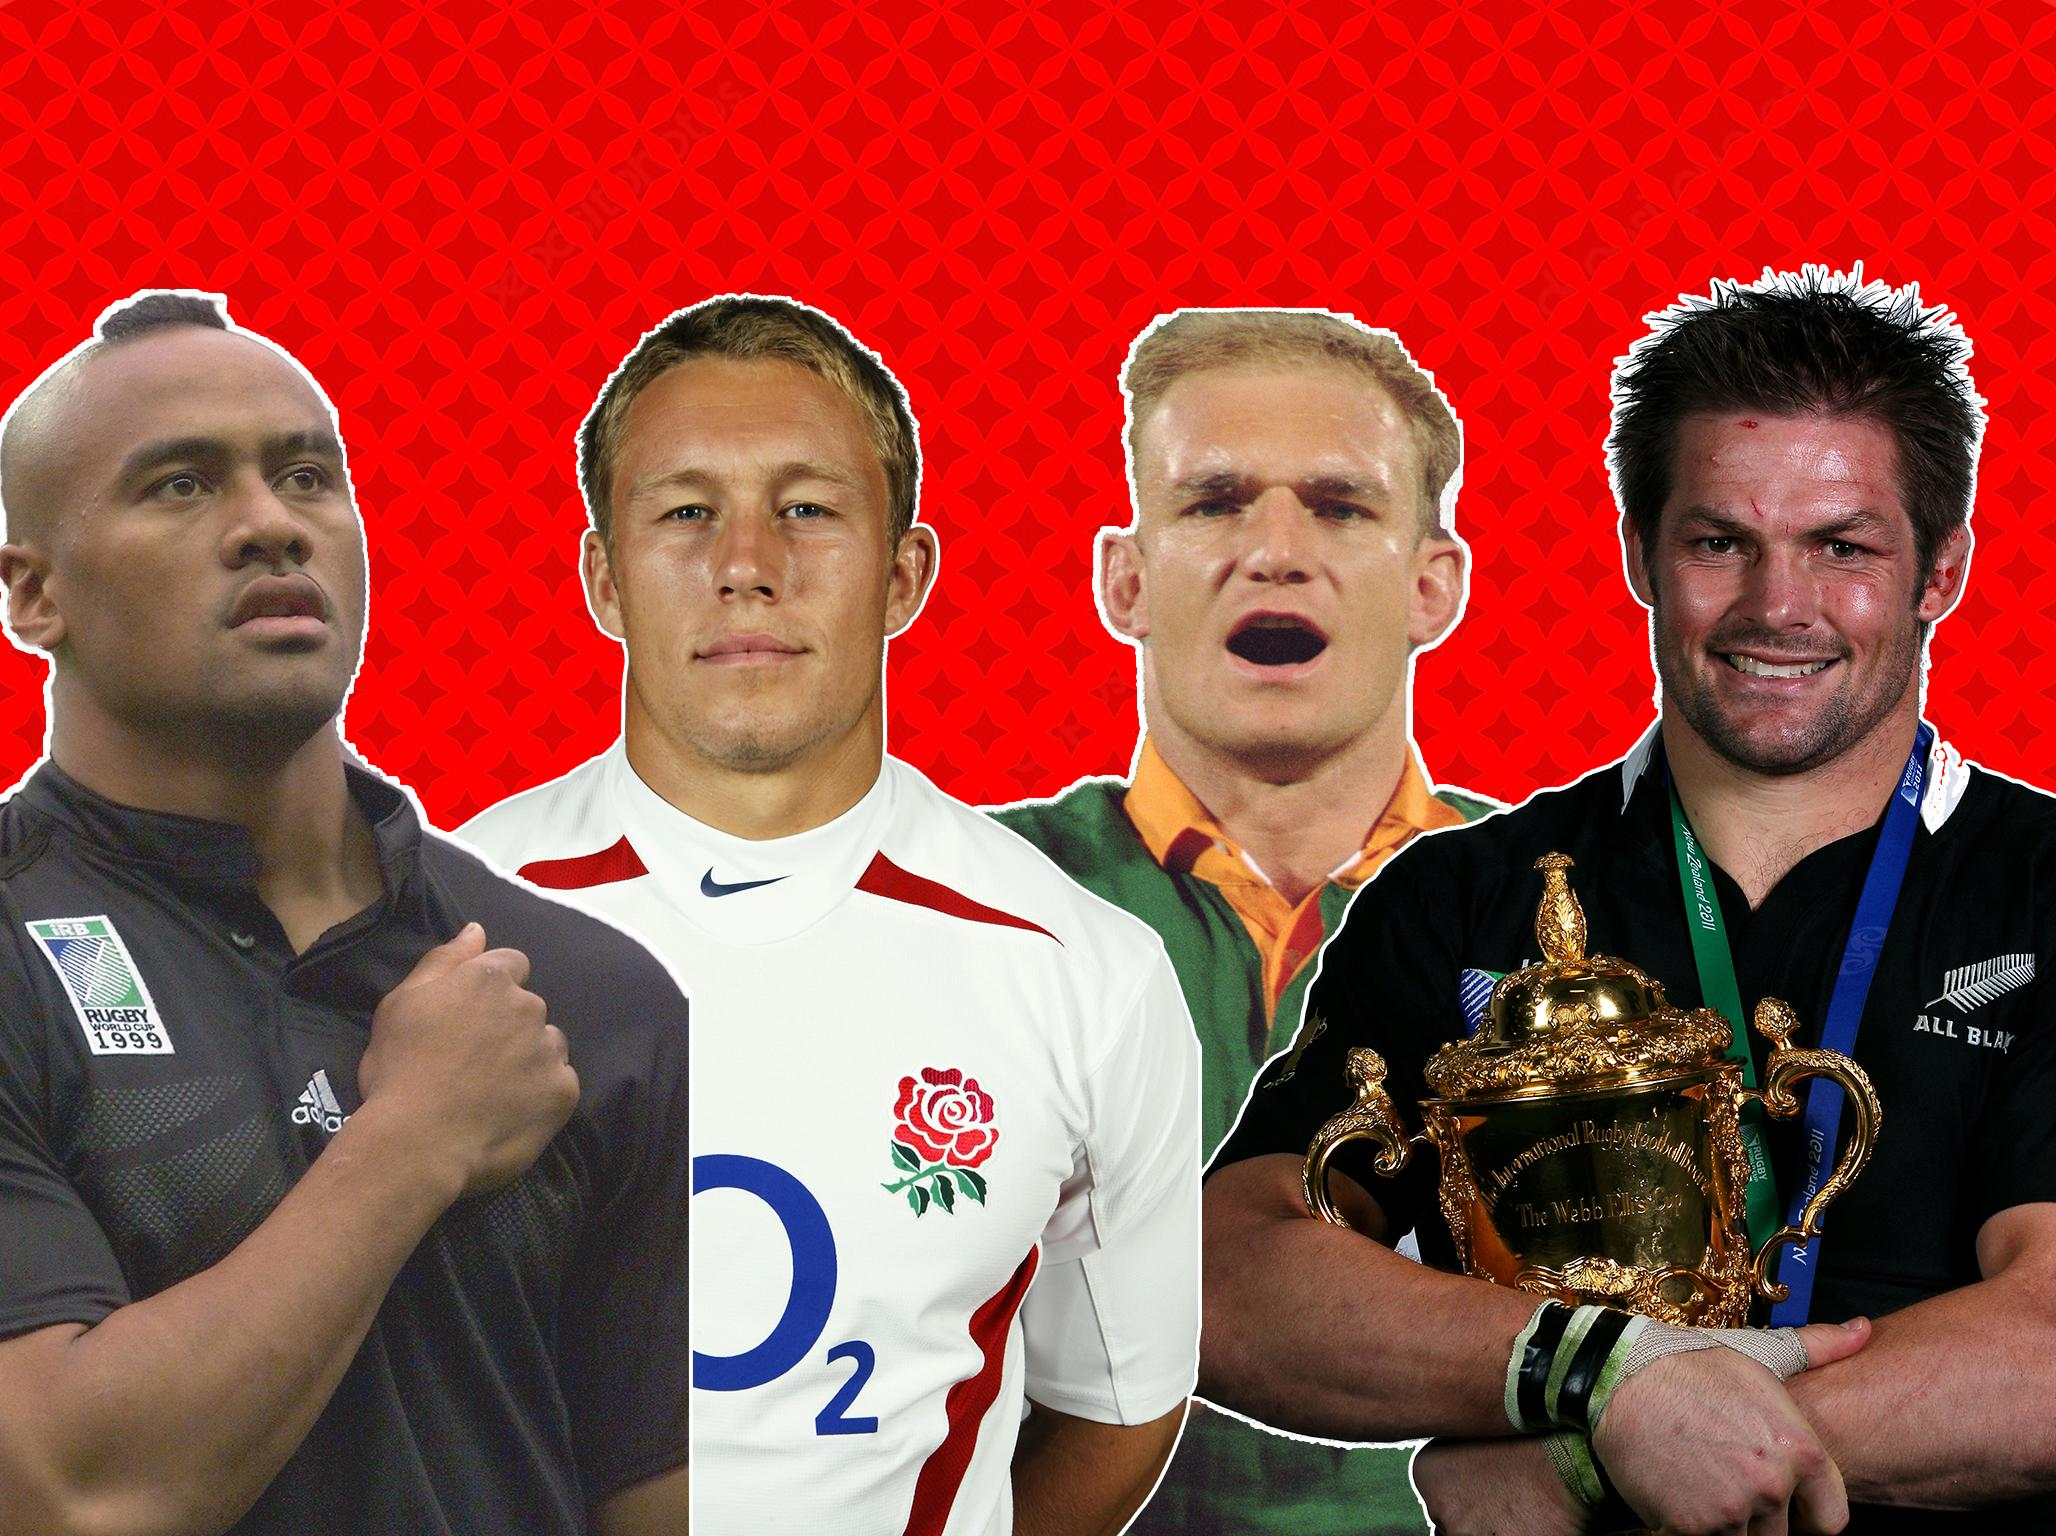 Rugby World Cup 100 greatest players: The best player in history revealed – Lomu, McCaw or Wilkinson?